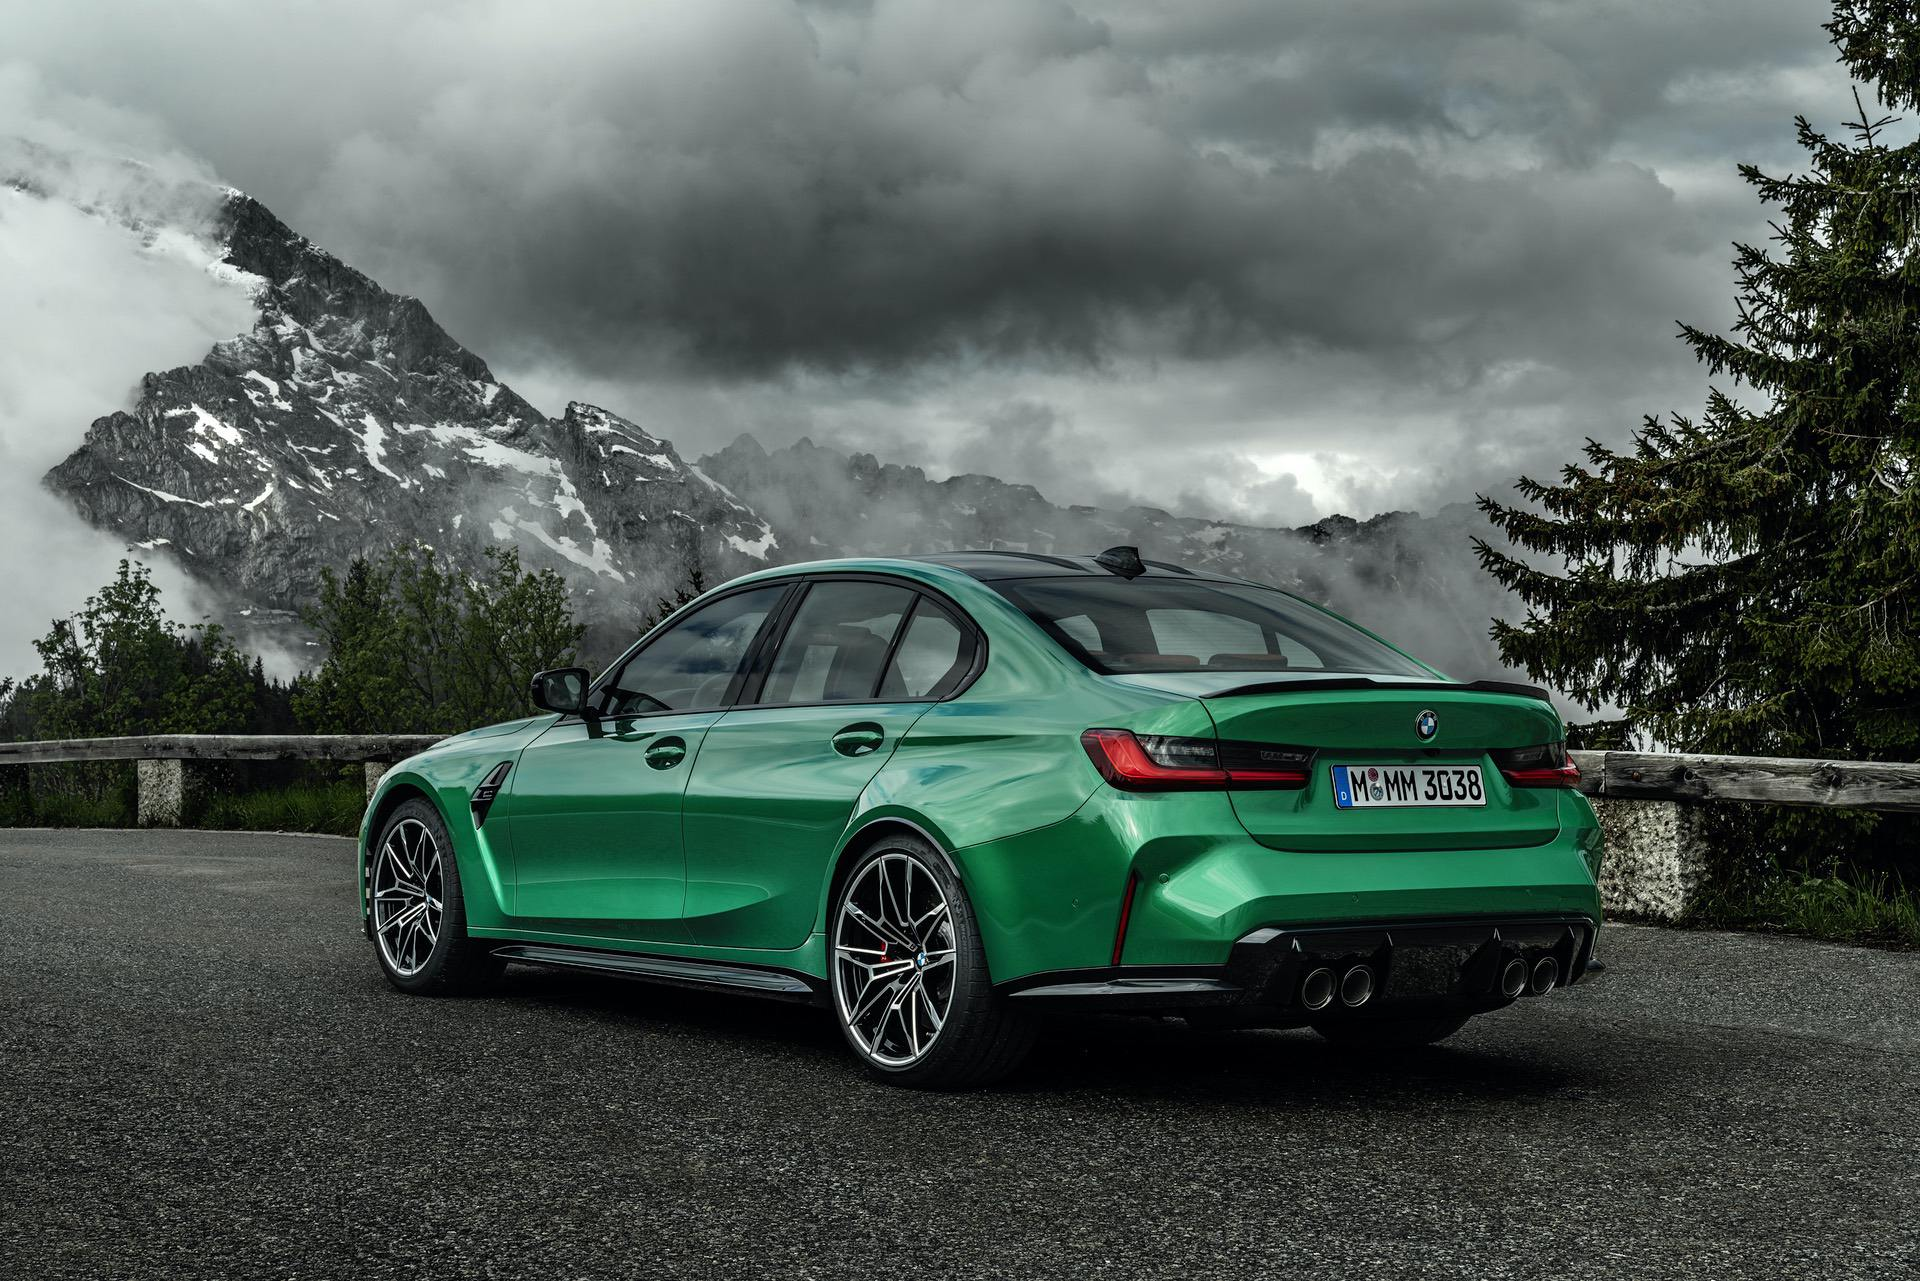 2021-bmw-m3-competition-exterior-03.jpg